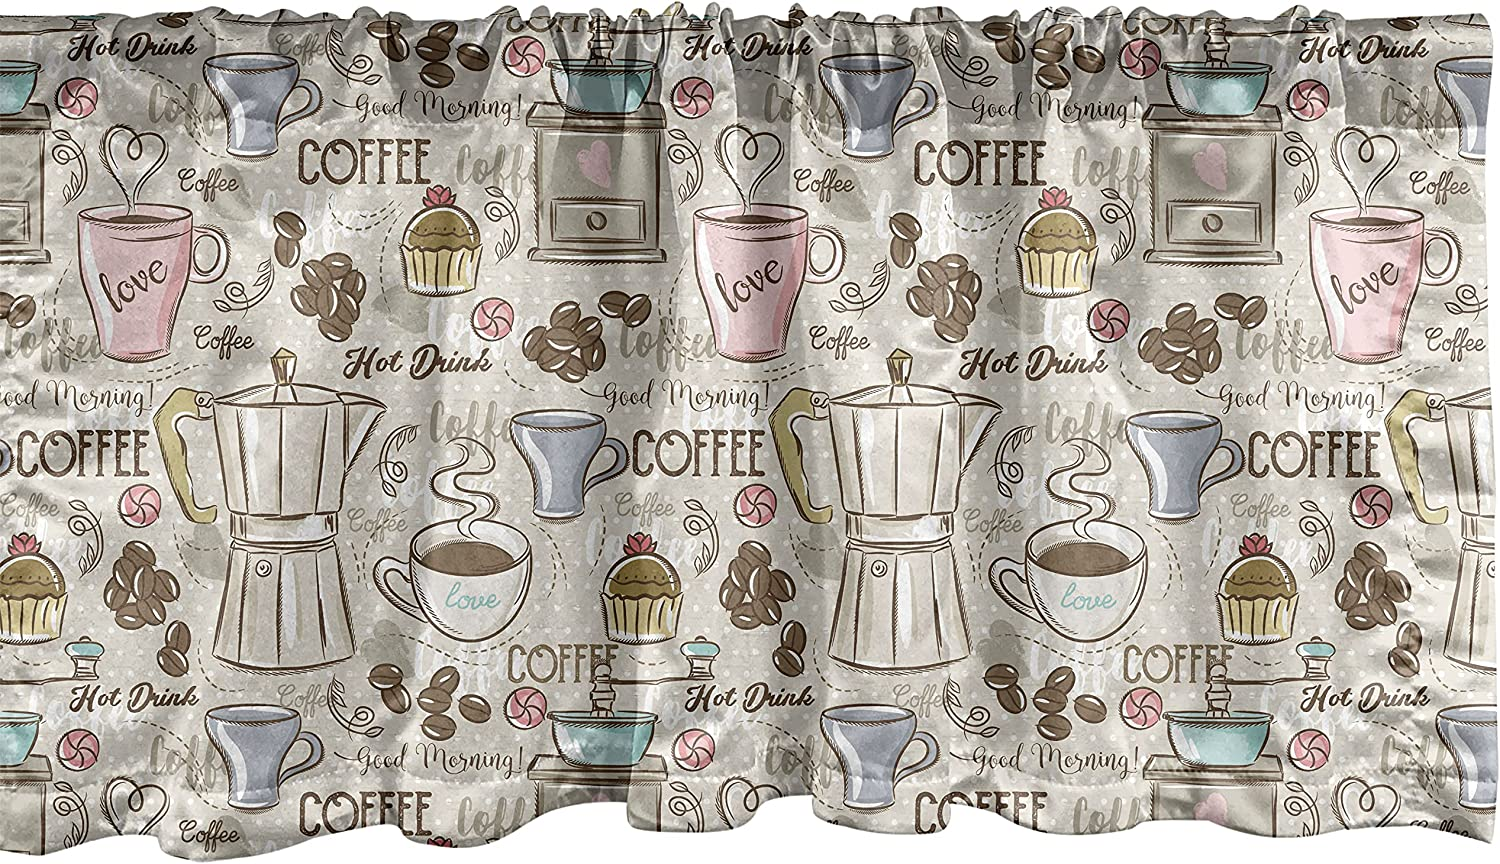 Ambesonne Modern Window Valance, Coffee Time Vintage Espresso Machine Cupcakes Beans Design, Curtain Valance for Kitchen Bedroom Decor with Rod Pocket, 54